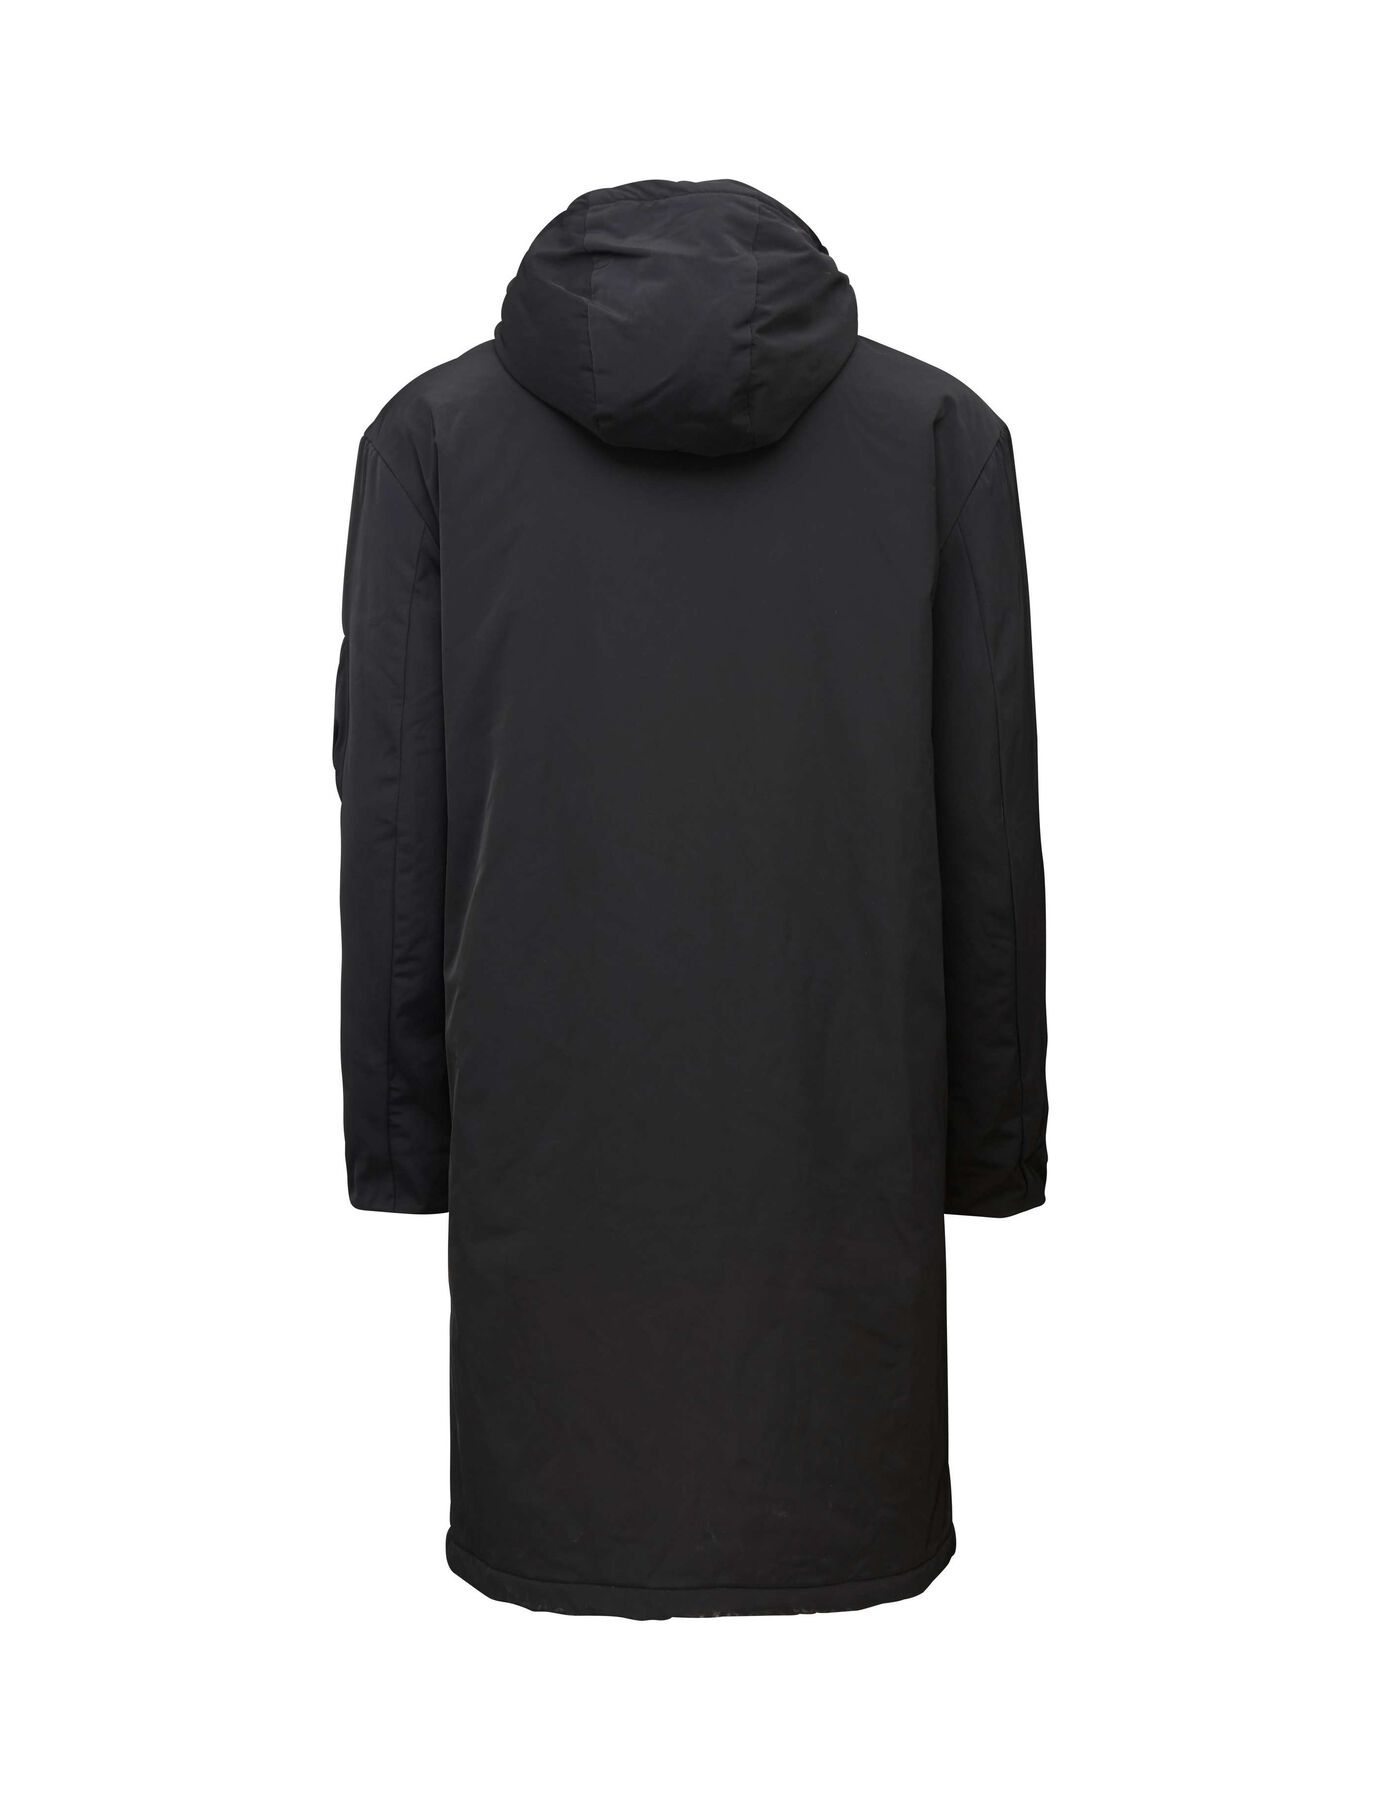 FAT COAT in Black from Tiger of Sweden